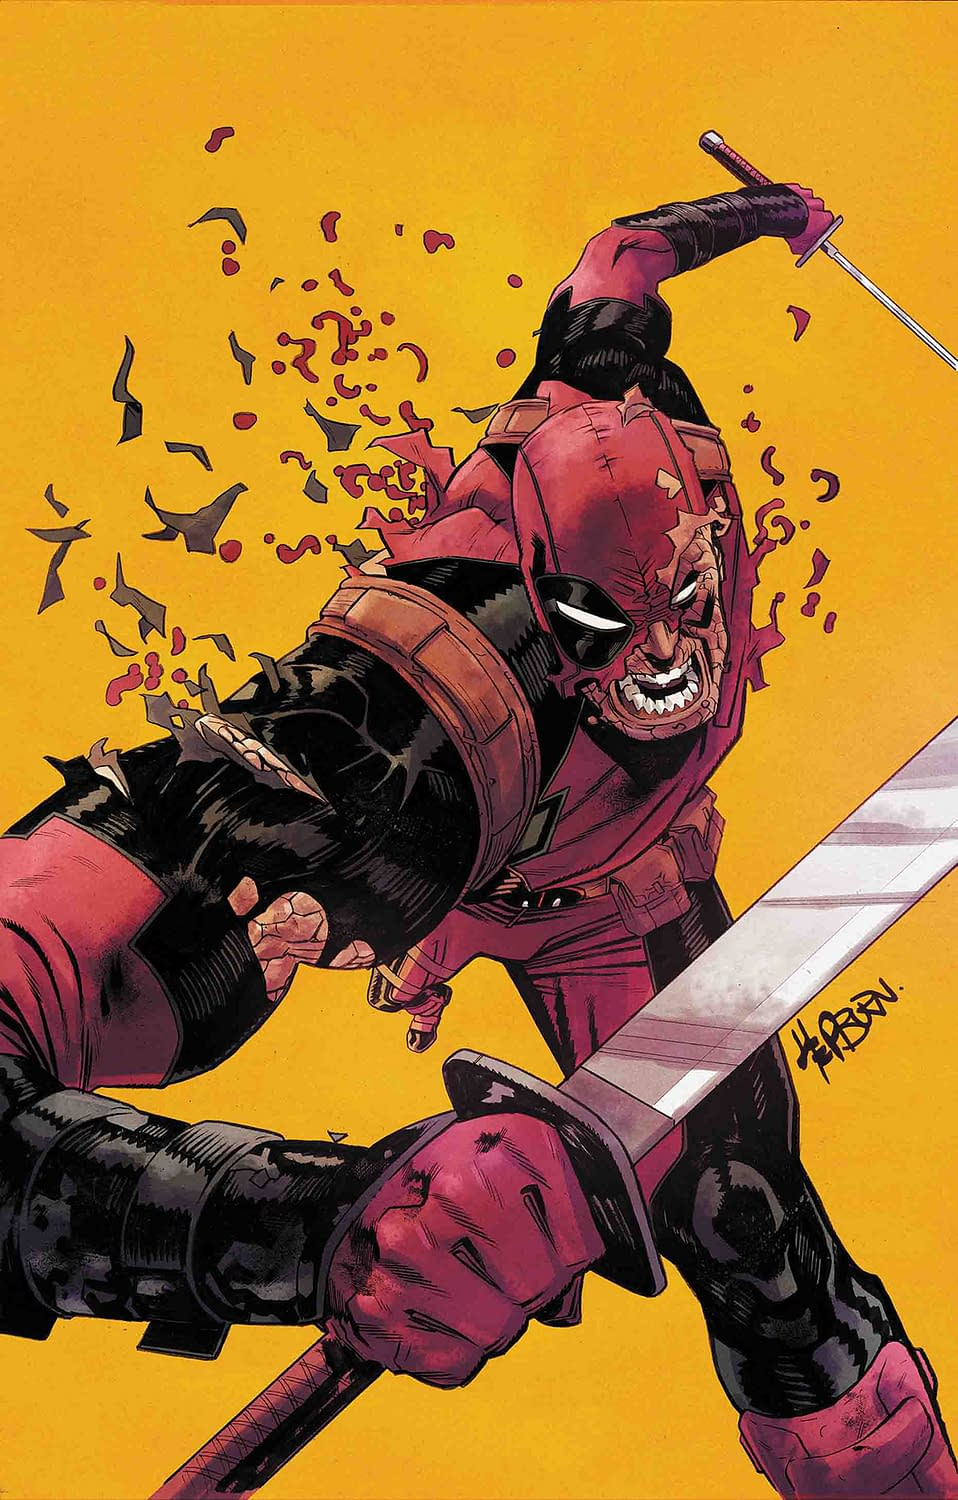 What If Batman's Parents Deserved to Die? An Eisner-Worthy Deadpool #12 Preview